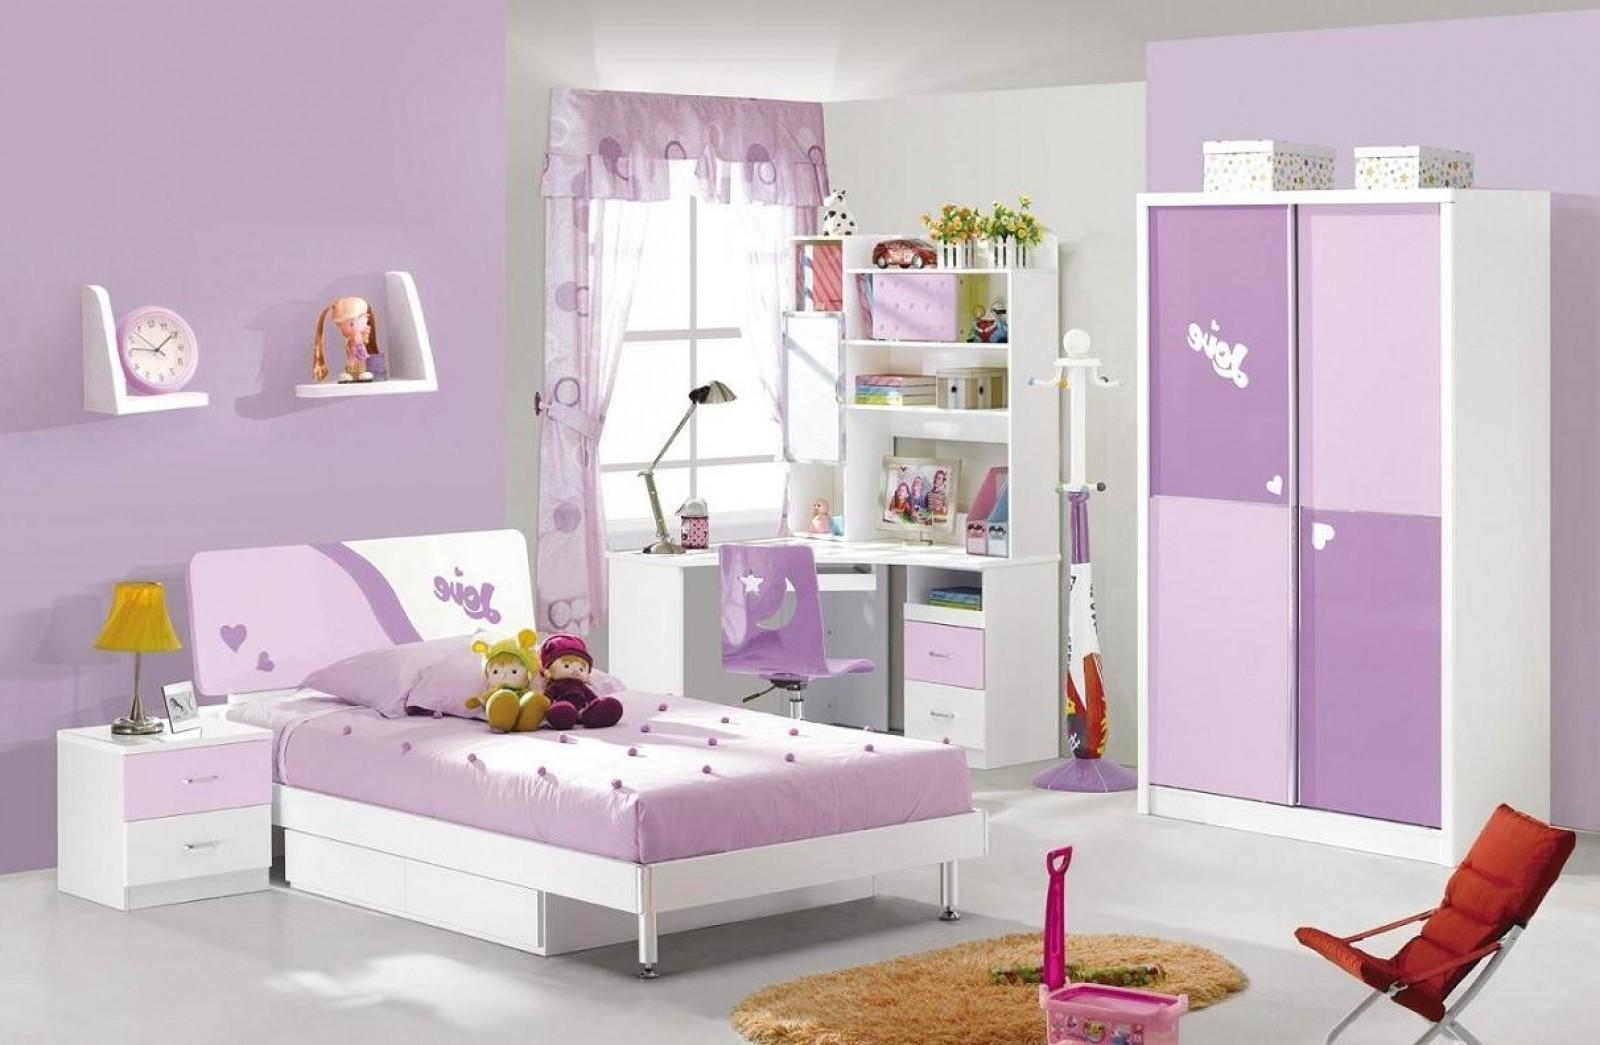 Picture of: Different Types Of Kids Bedroom Furniture Decorating Trends That Are Simple Yet Pleasurable Incredible Pictures Decoratorist